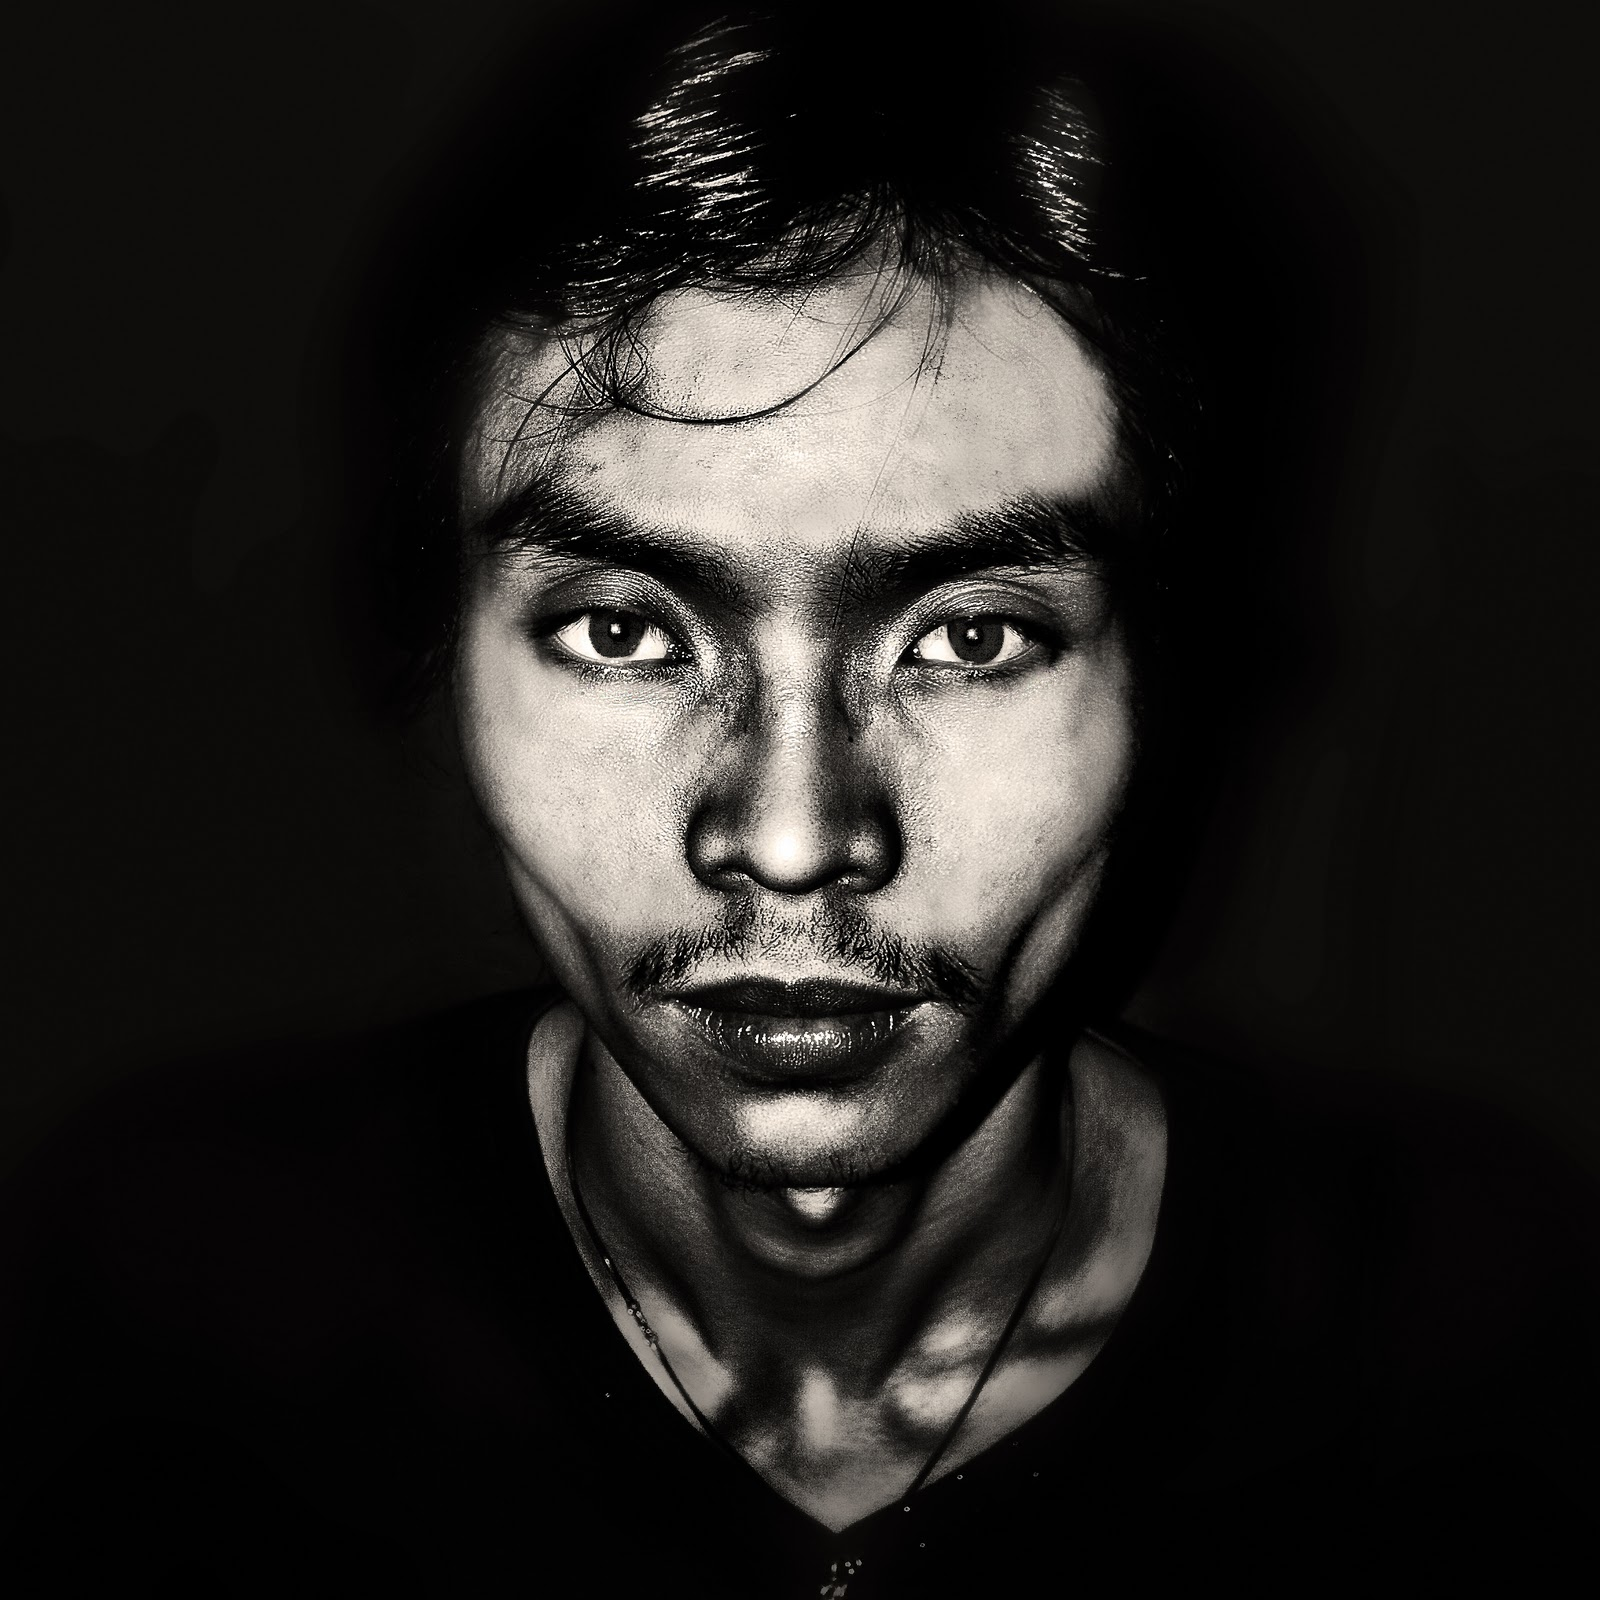 High contrast s portrait in square format